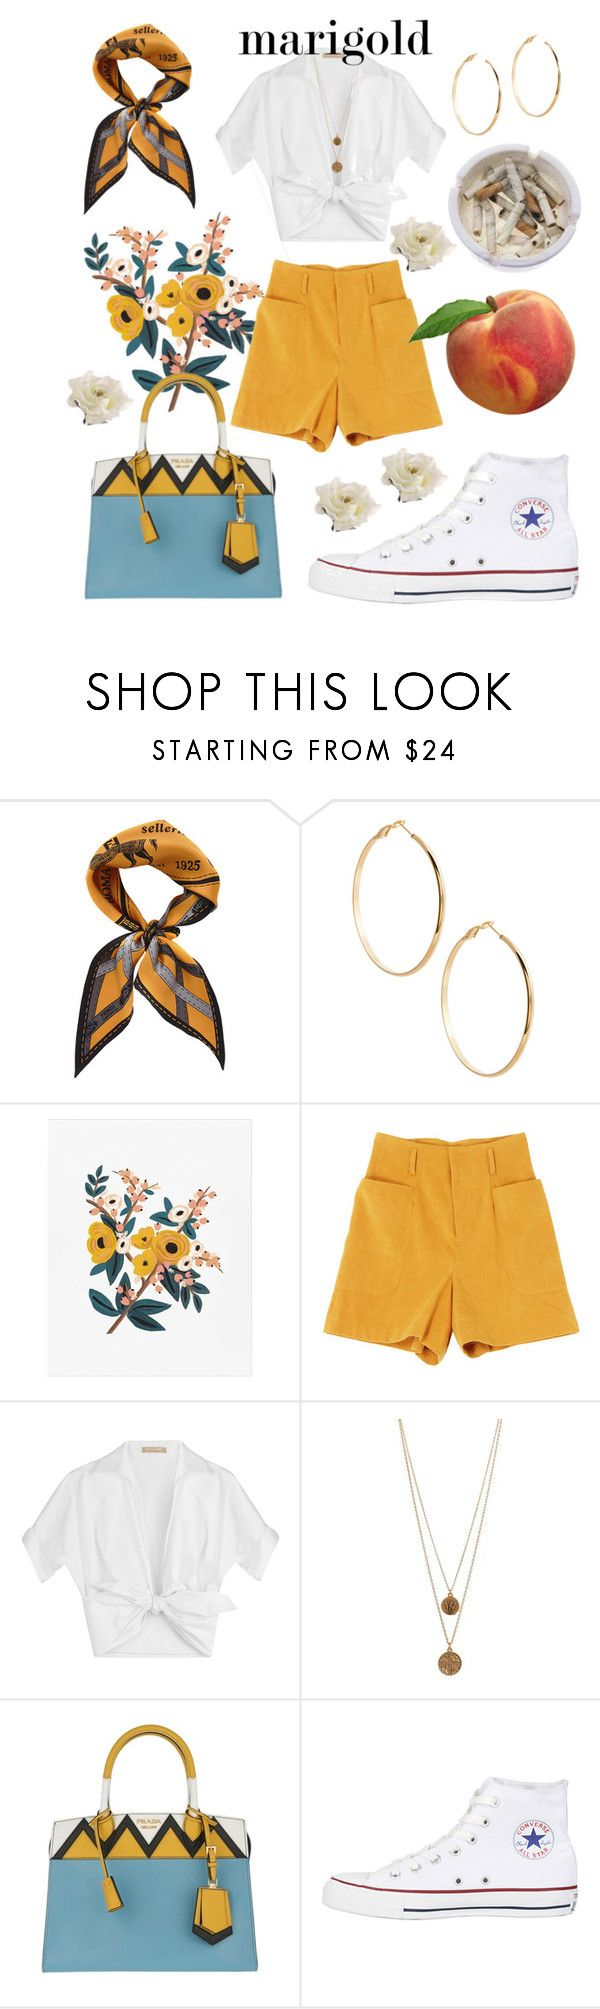 """""""marigold"""" by iamlwiz ❤ liked on Polyvore featuring Fendi, GUESS by Marciano, Michael Kors, Bee Charming, Prada, Converse and Ash"""